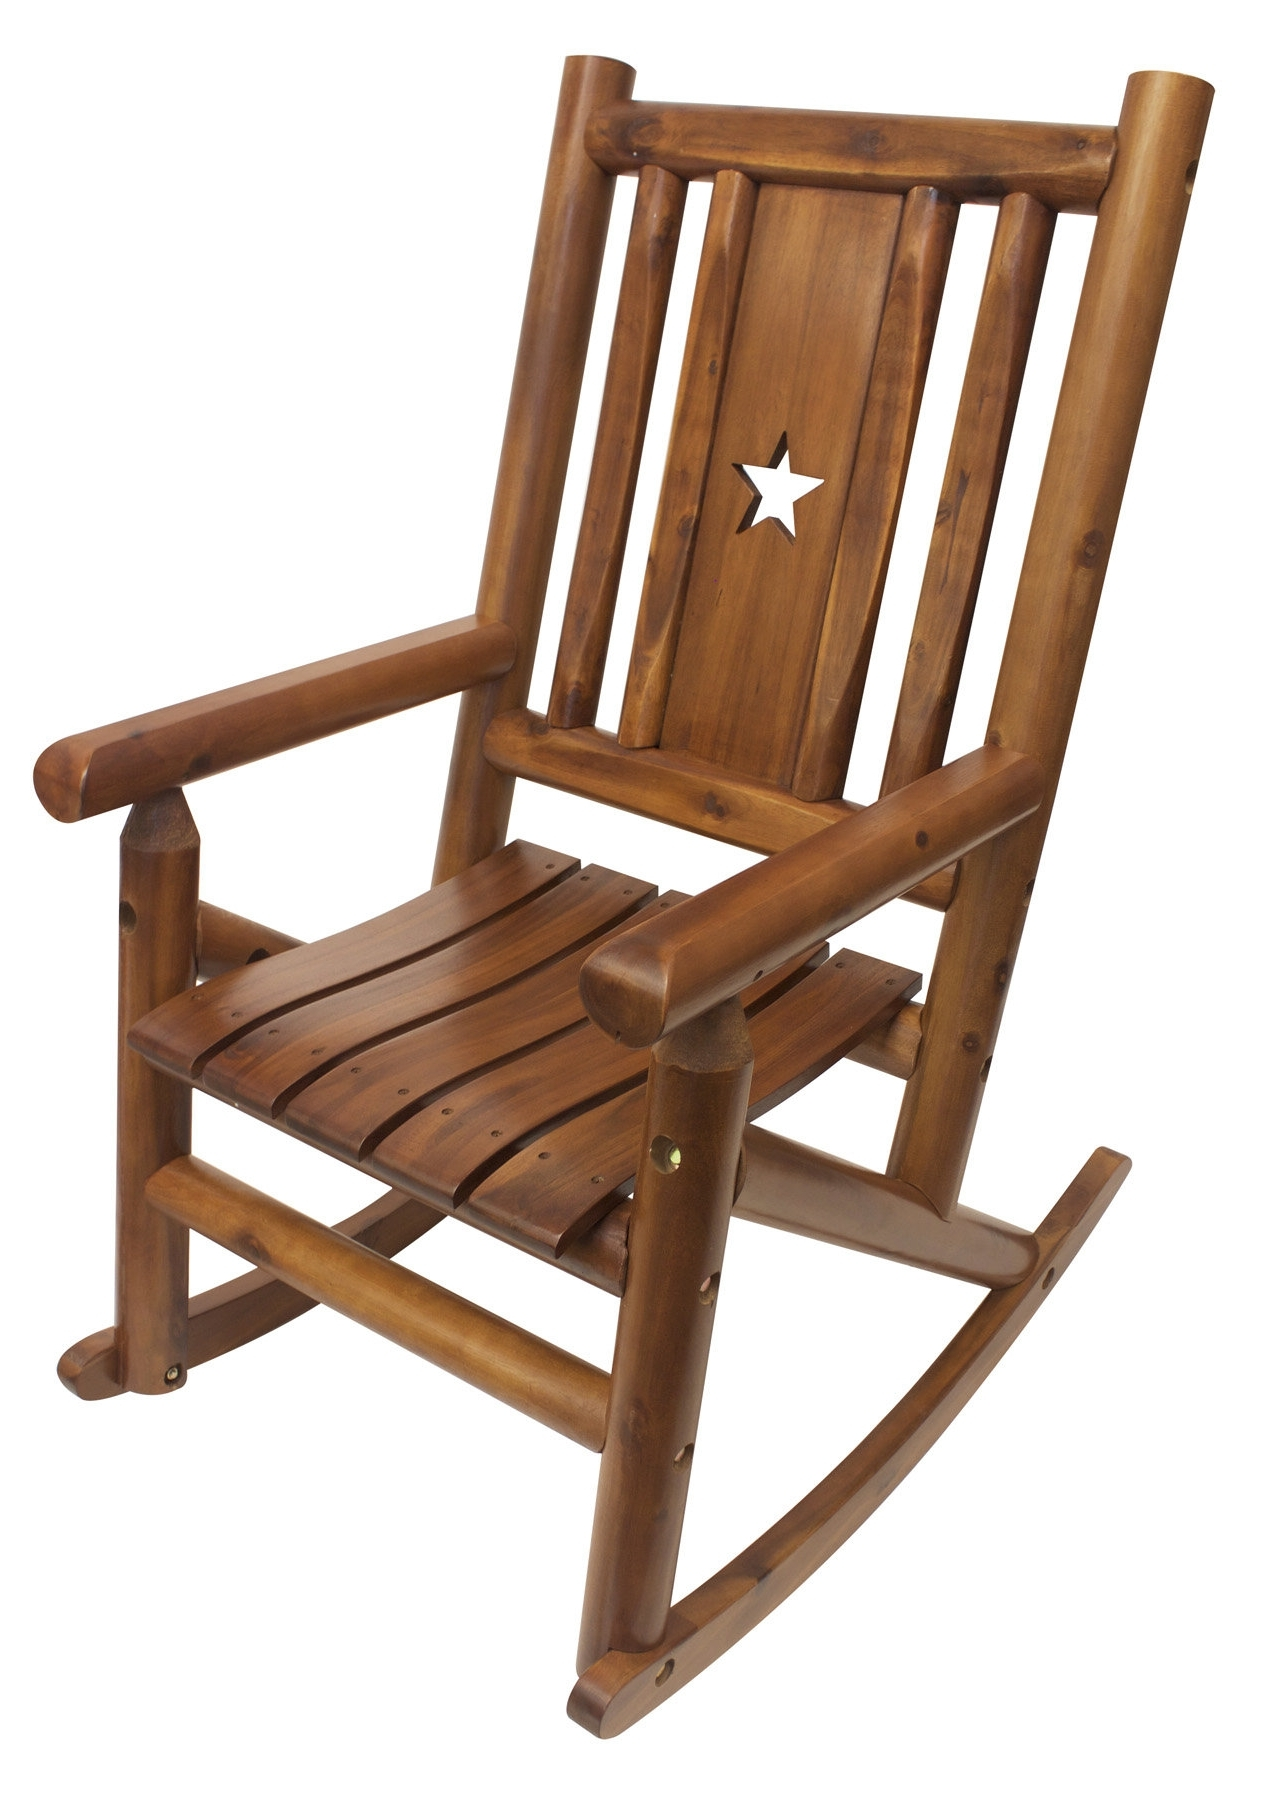 Wayfair For Char Log Patio Rocking Chairs With Star (View 14 of 15)